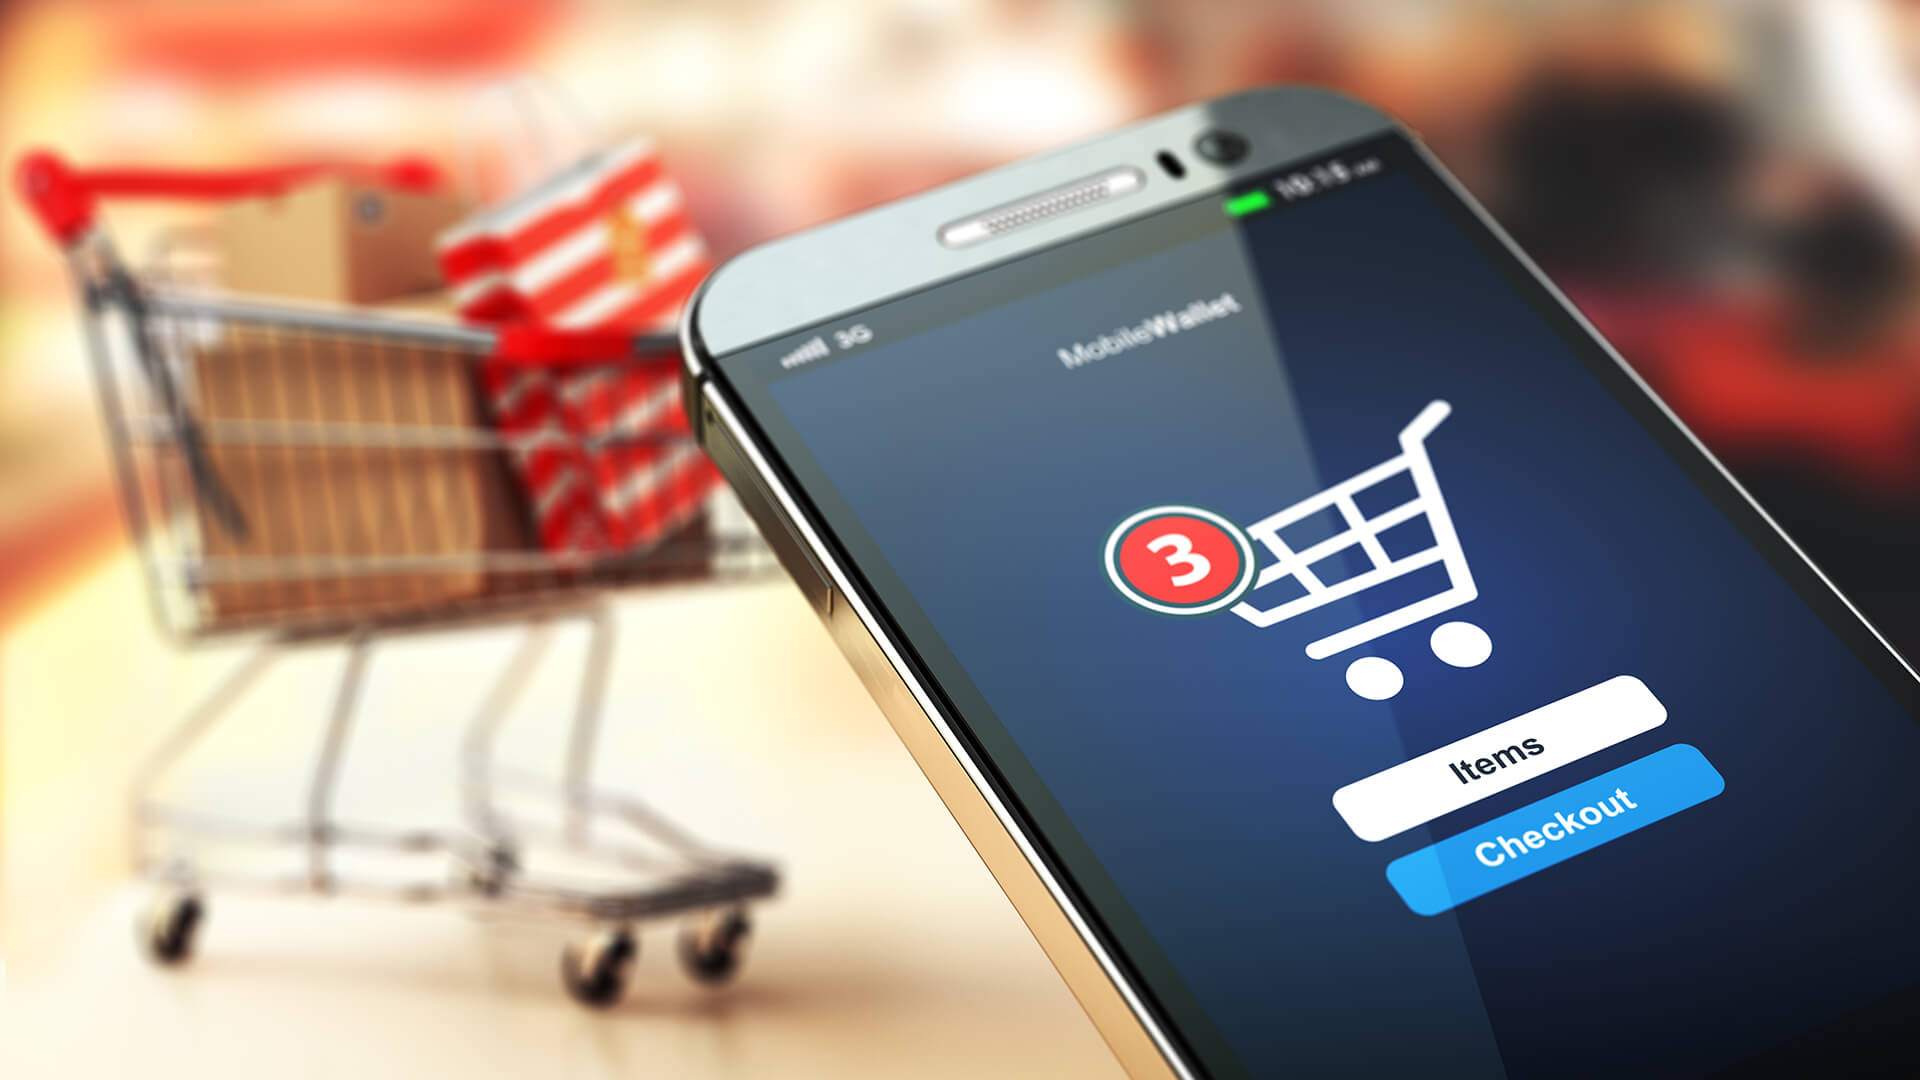 Mobiles are changing e-commerce and consumer purchasing habits